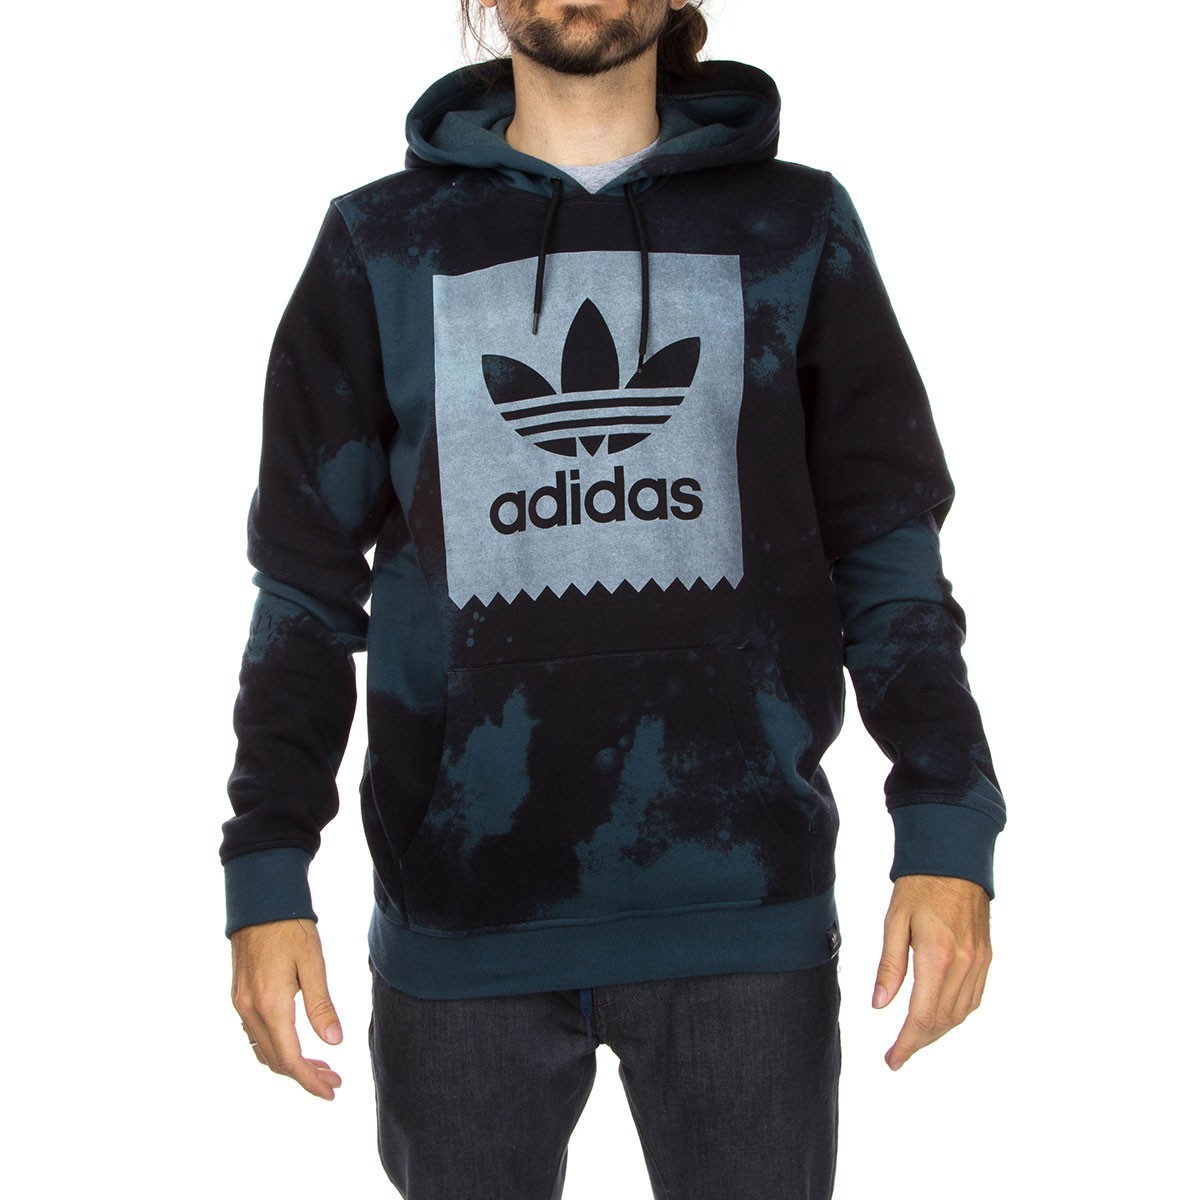 quality products look for really comfortable Adidas D2D Aop Hoodie - Midnight/Black